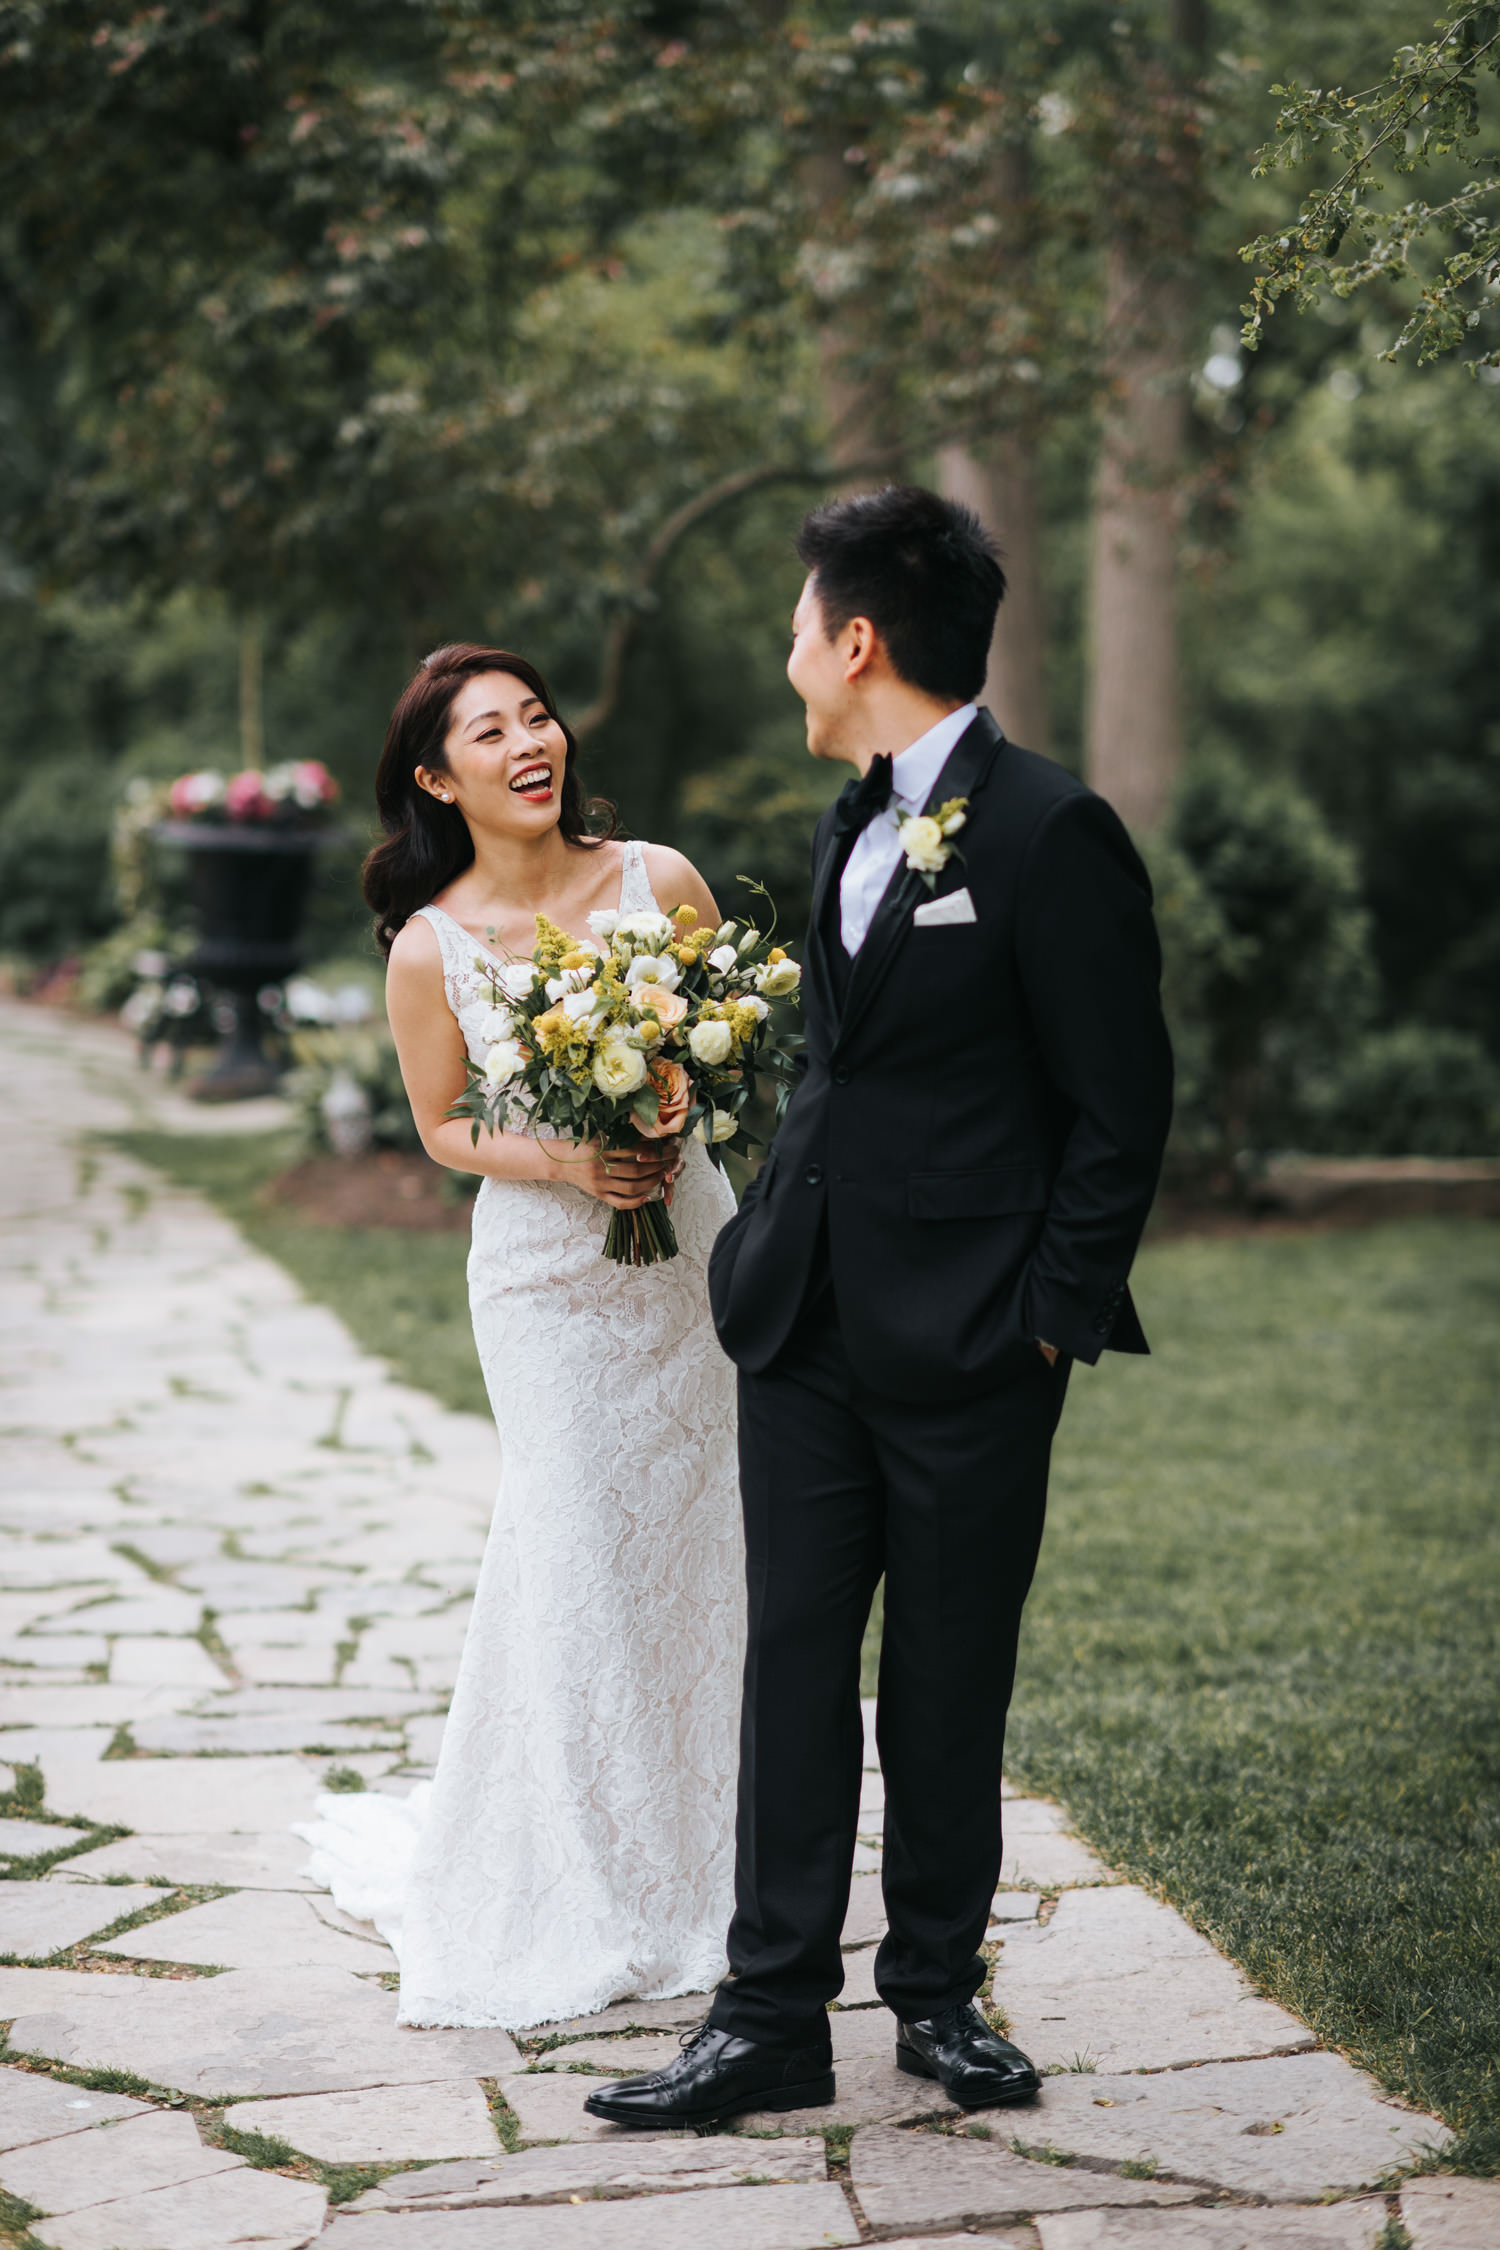 First look wedding photo at the Doctor's House Kleinburg